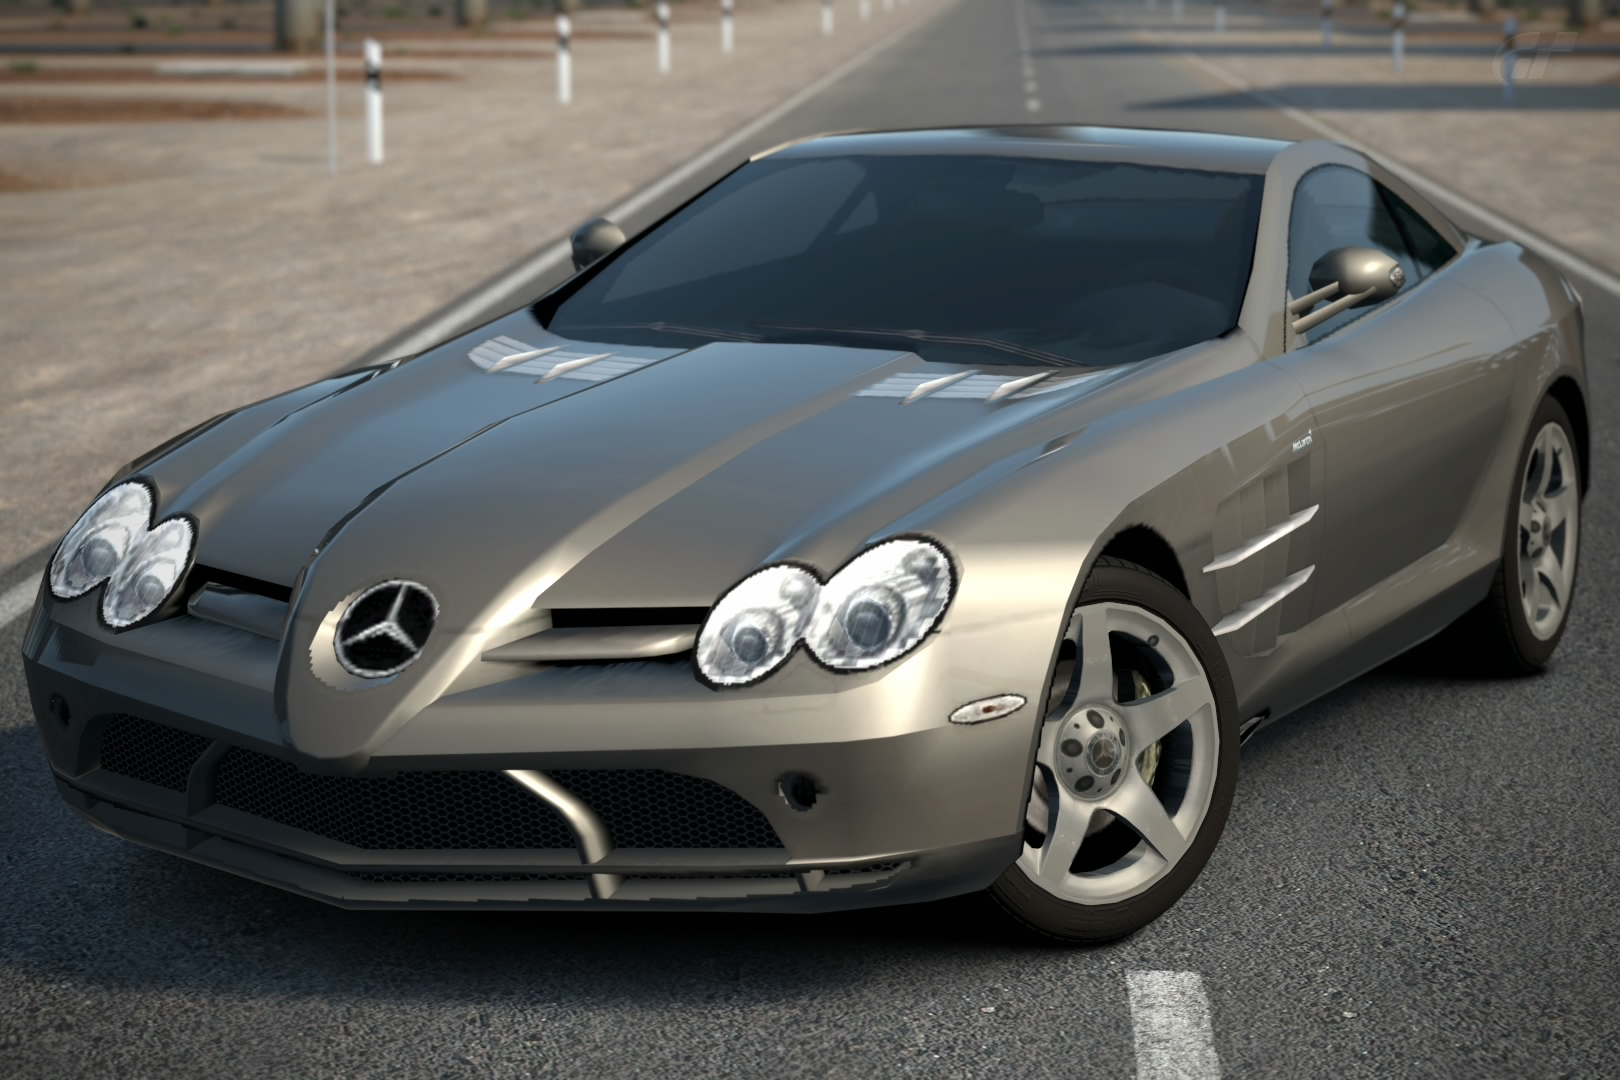 Mercedes Benz Slr Mclaren 03 Gran Turismo Wiki Fandom Powered